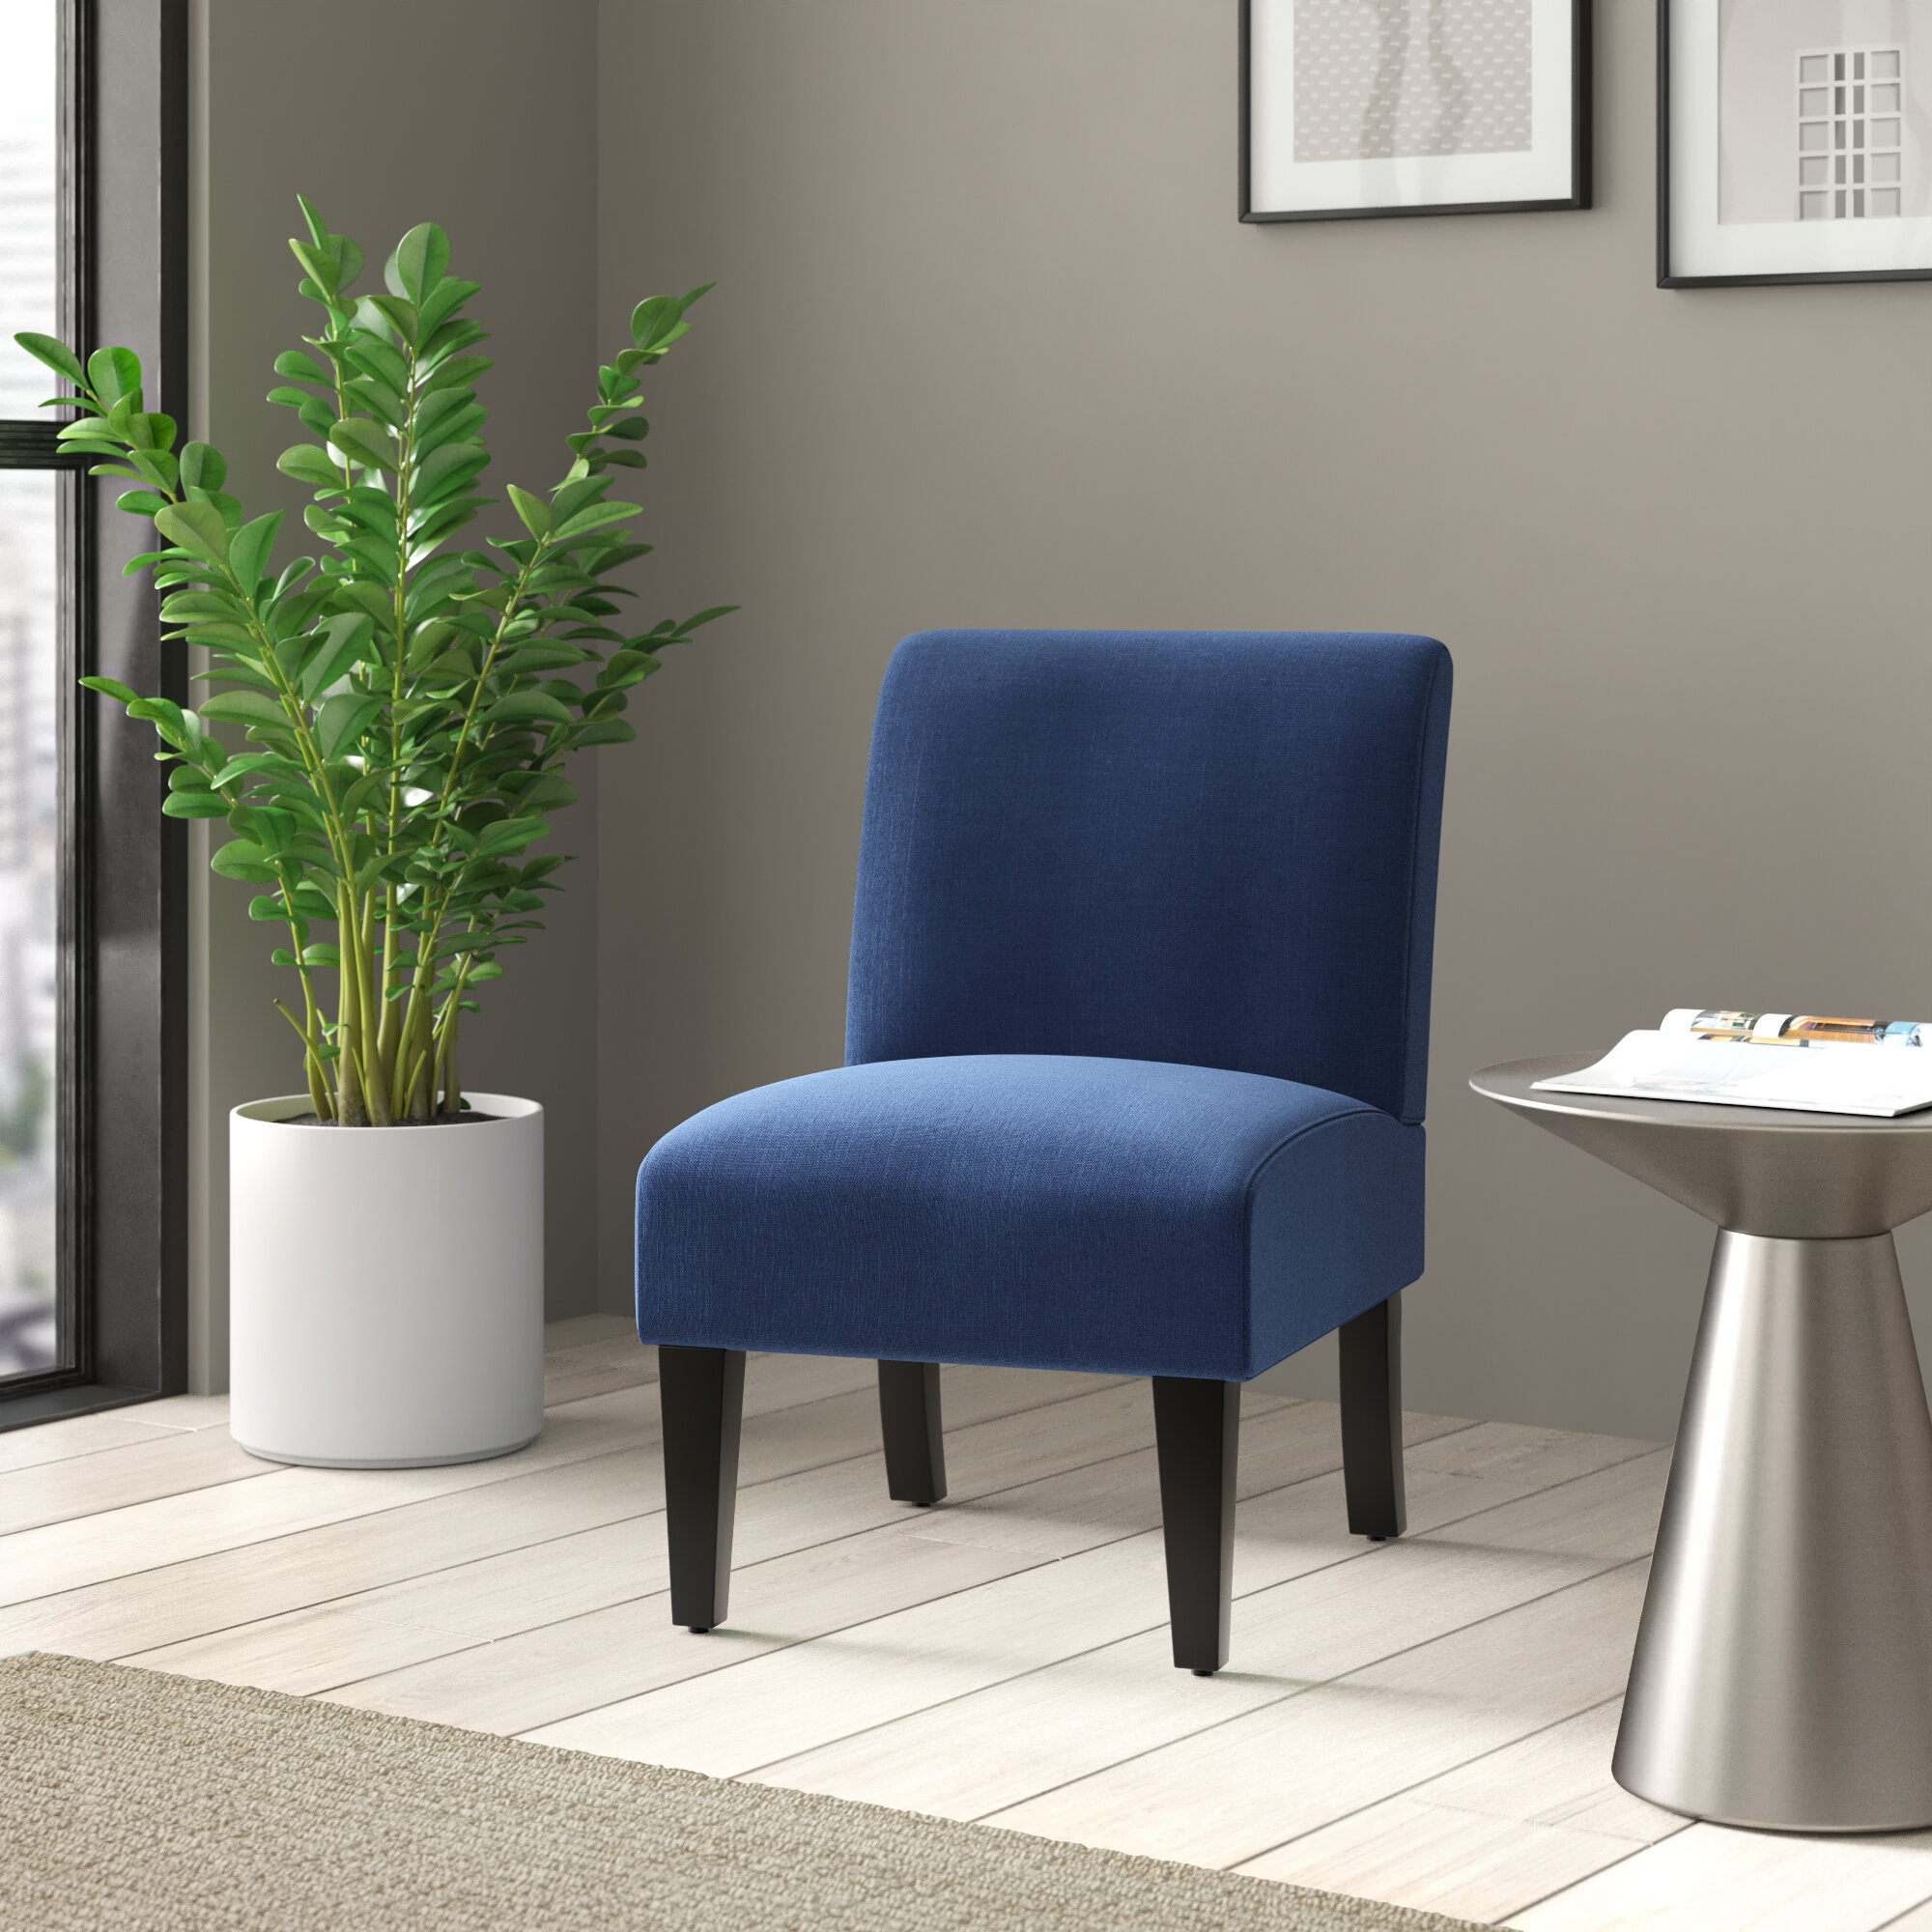 Belleze Armless Contemporary Upholstered Single Curved Slipper Accent Chair Living Room Bedroom – Walmart Intended For Goodyear Slipper Chairs (View 7 of 15)